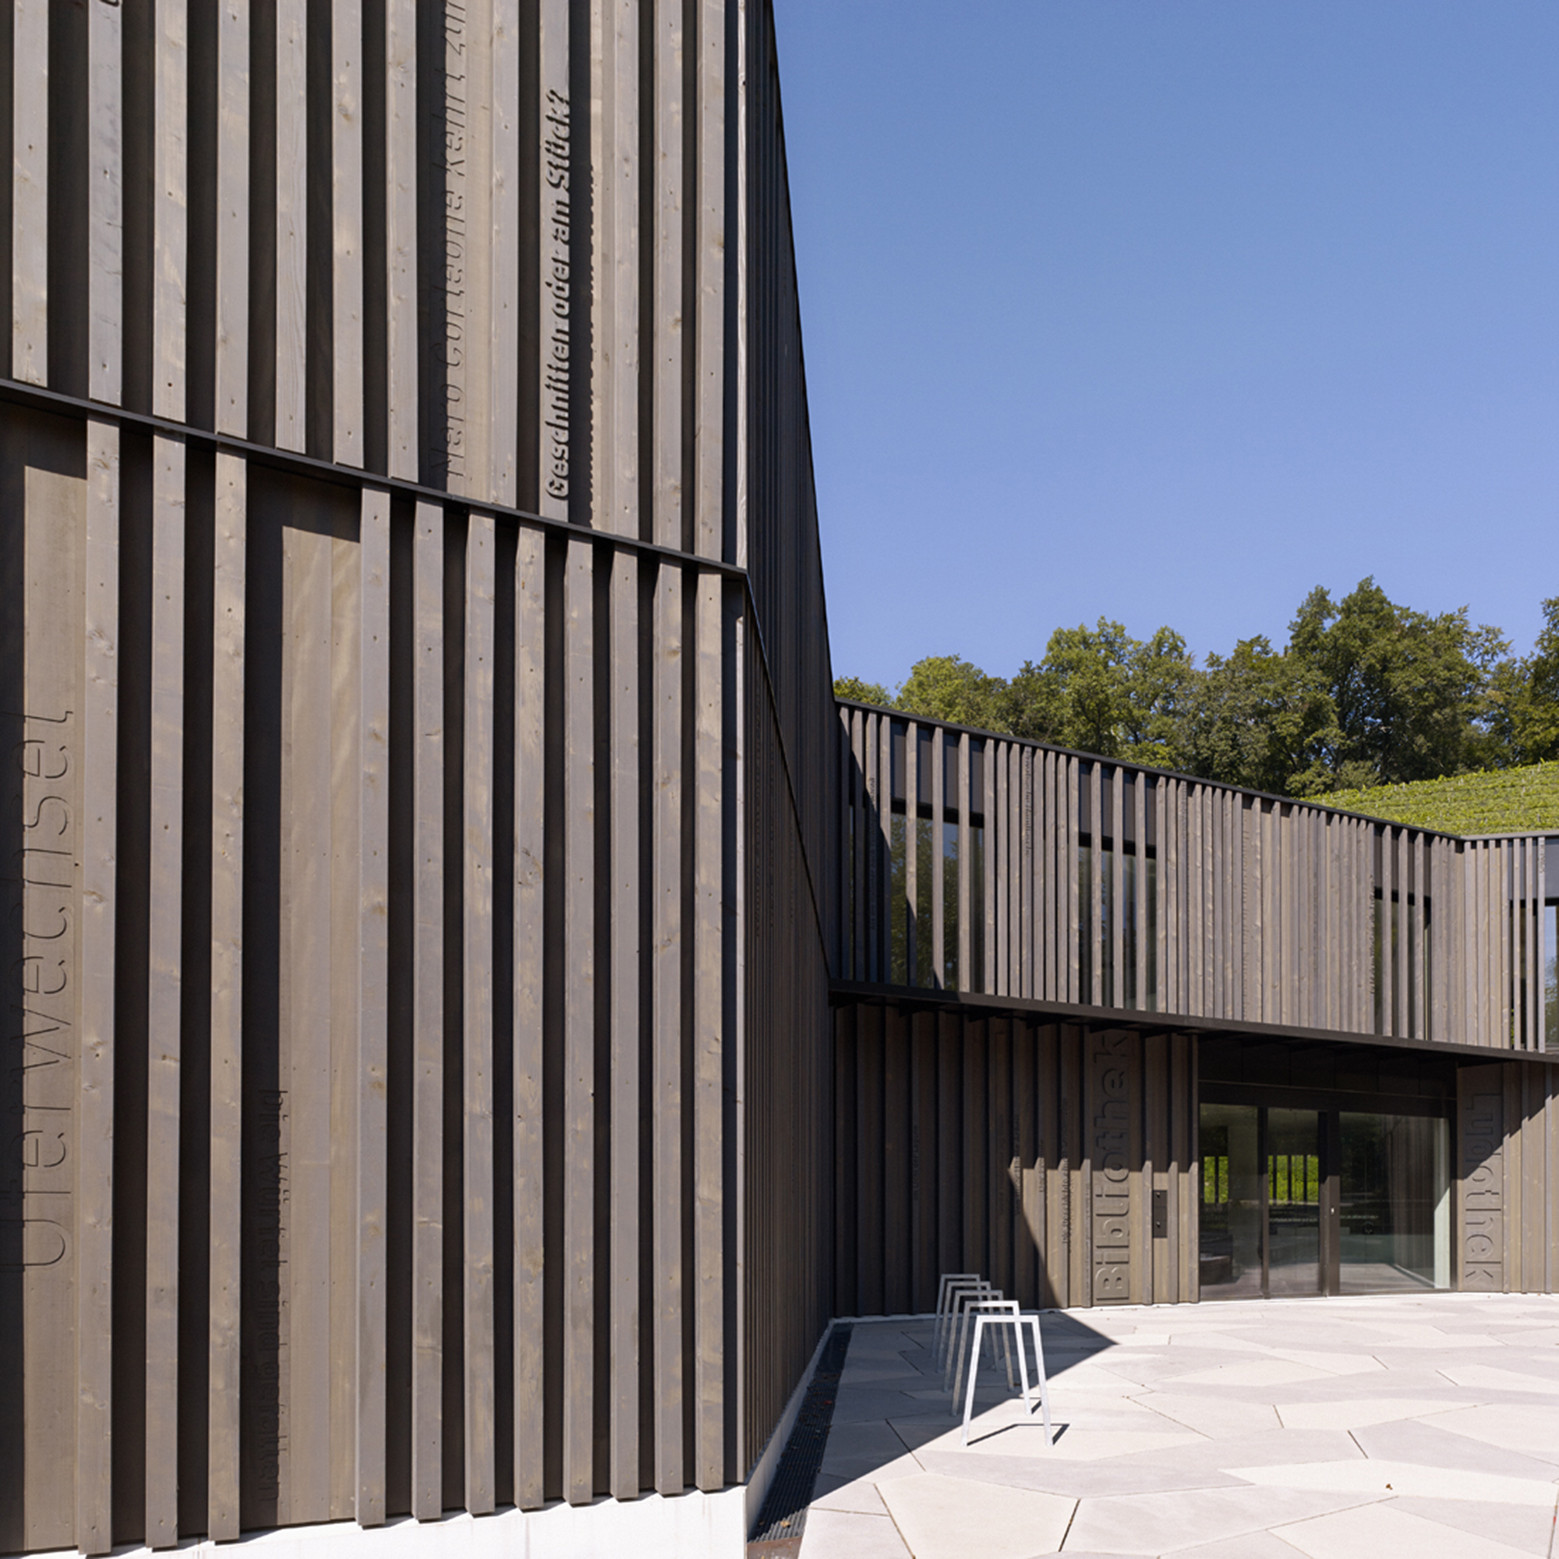 Library, Game Library & Municipality Administration in Spiez / bauzeit architekten, © Yves André